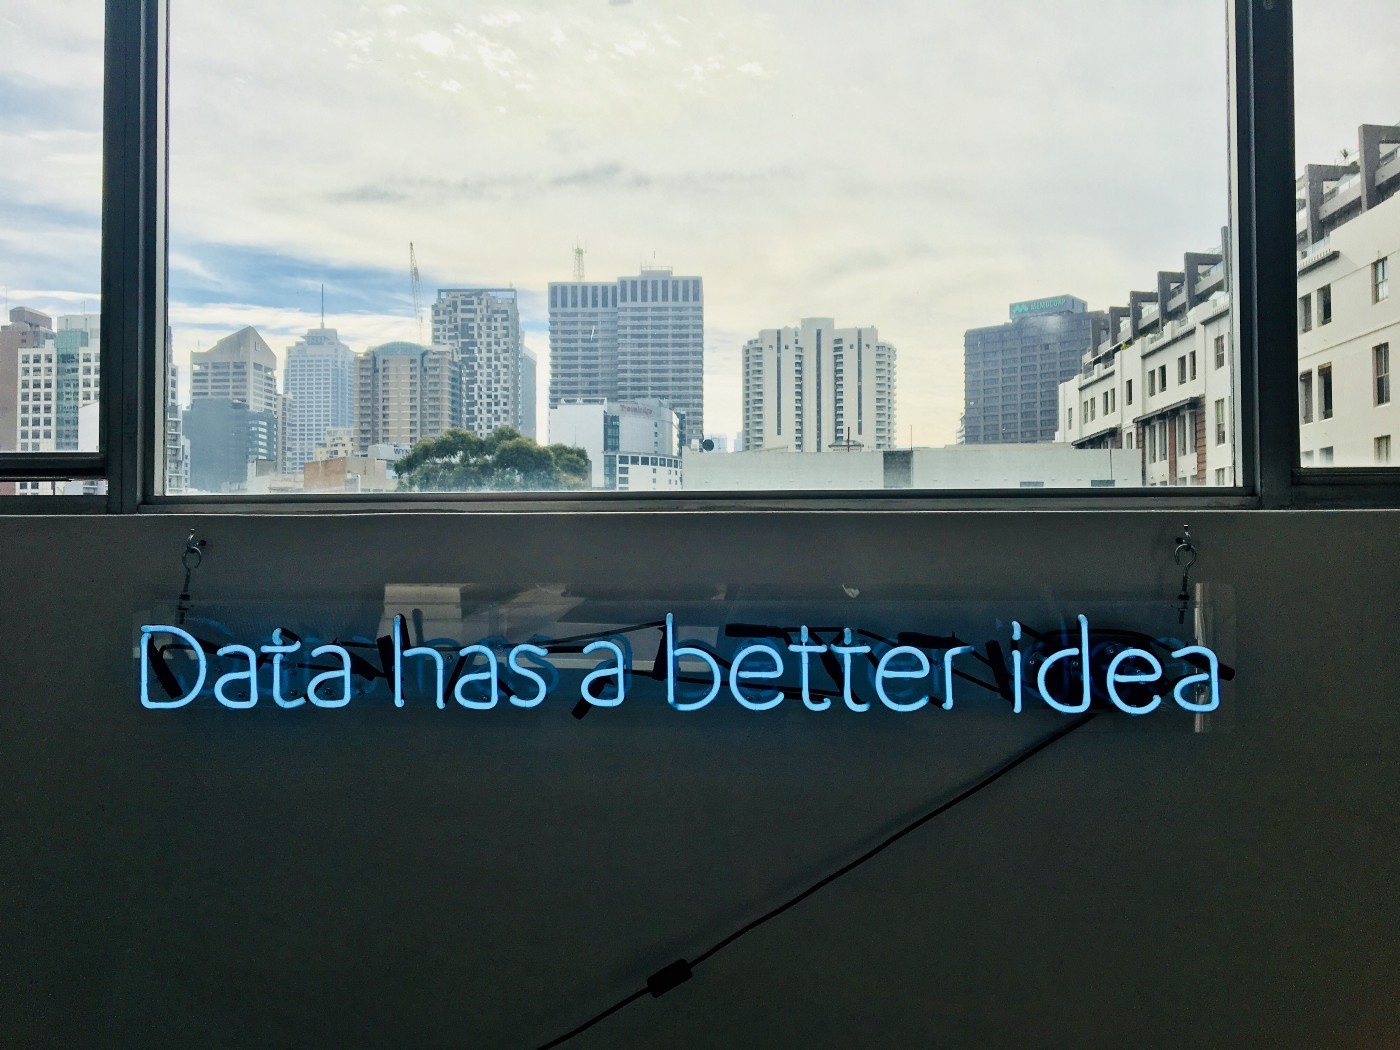 Neon Blue lettering. Phrase is 'Data has a better idea'. It is below a window which has a view of a city skyline behind it.